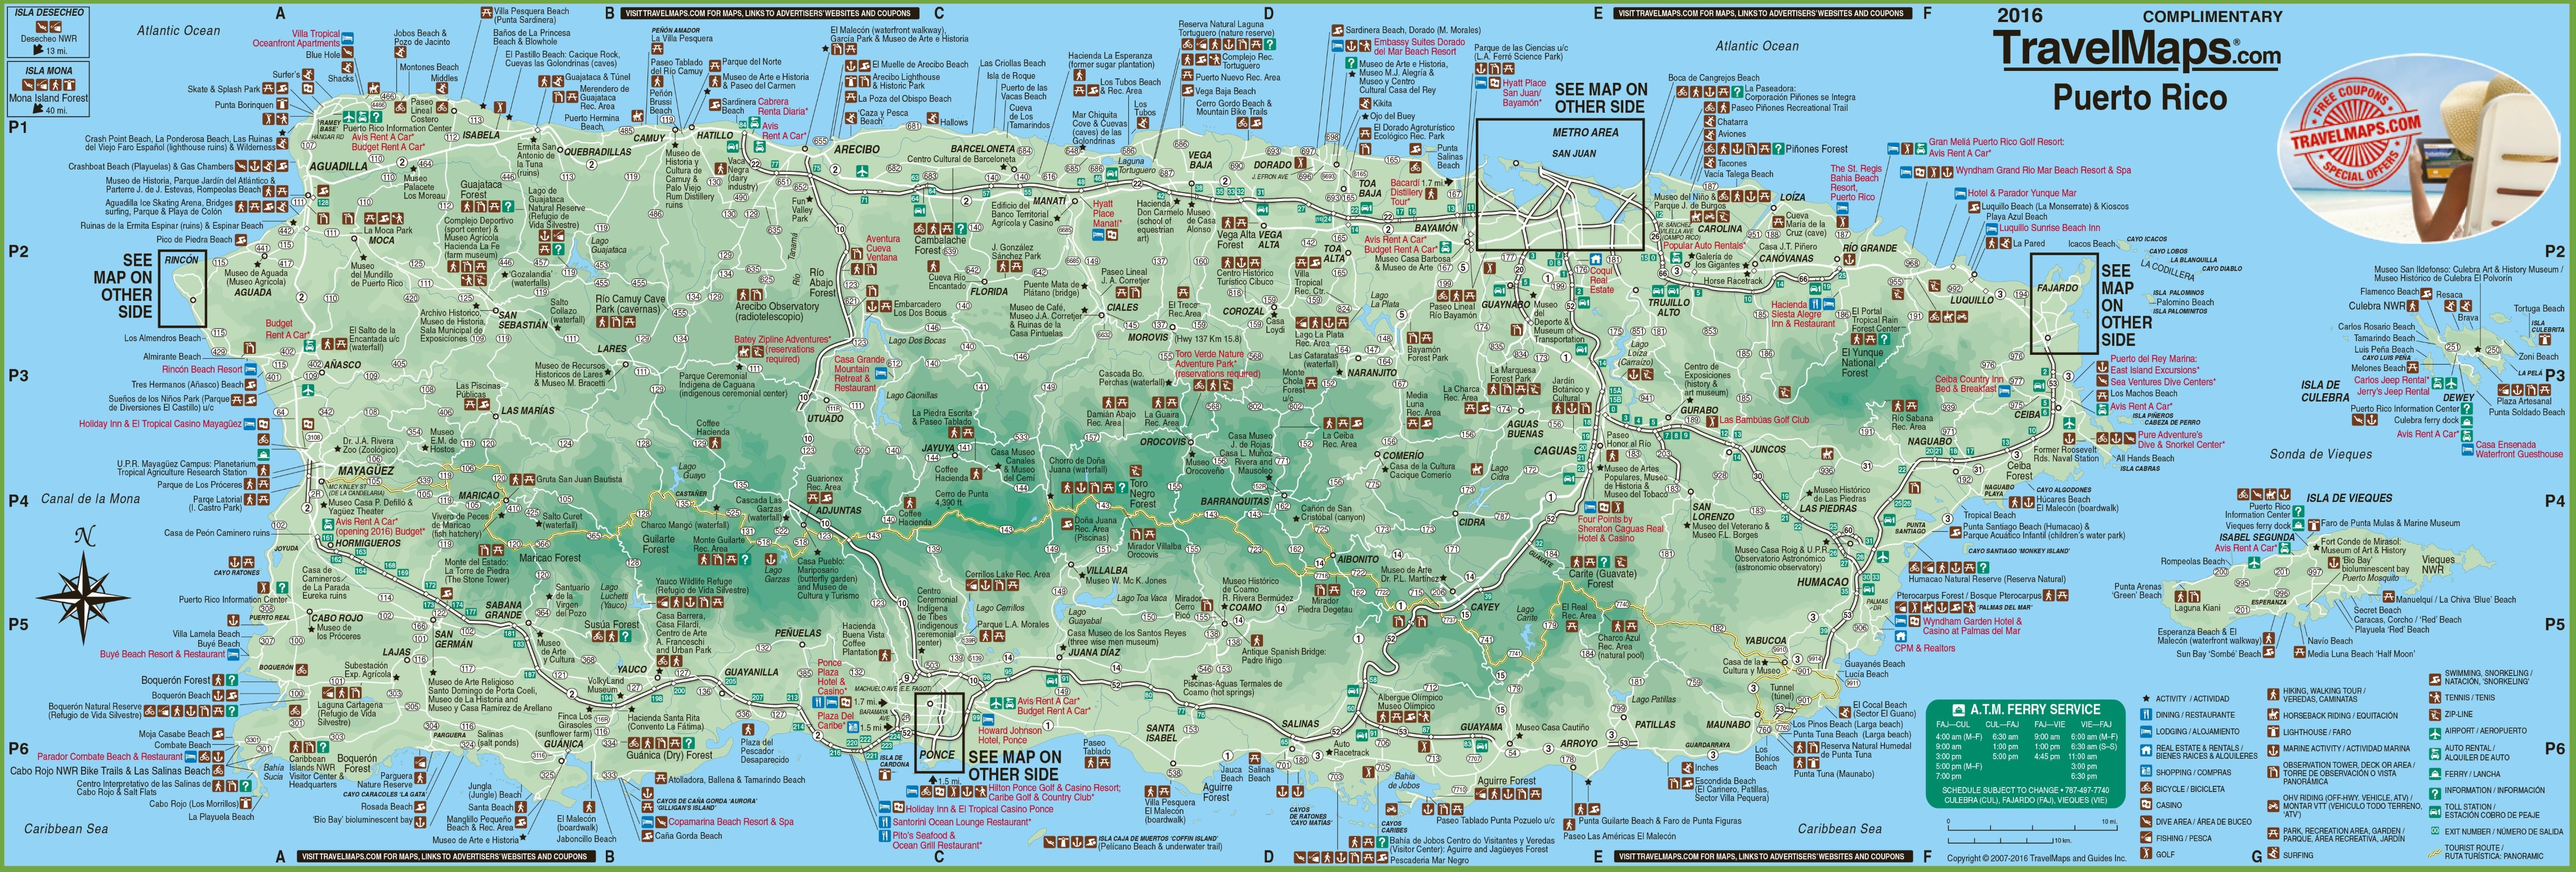 Puerto Rico Maps – Puerto Rico Tourist Map